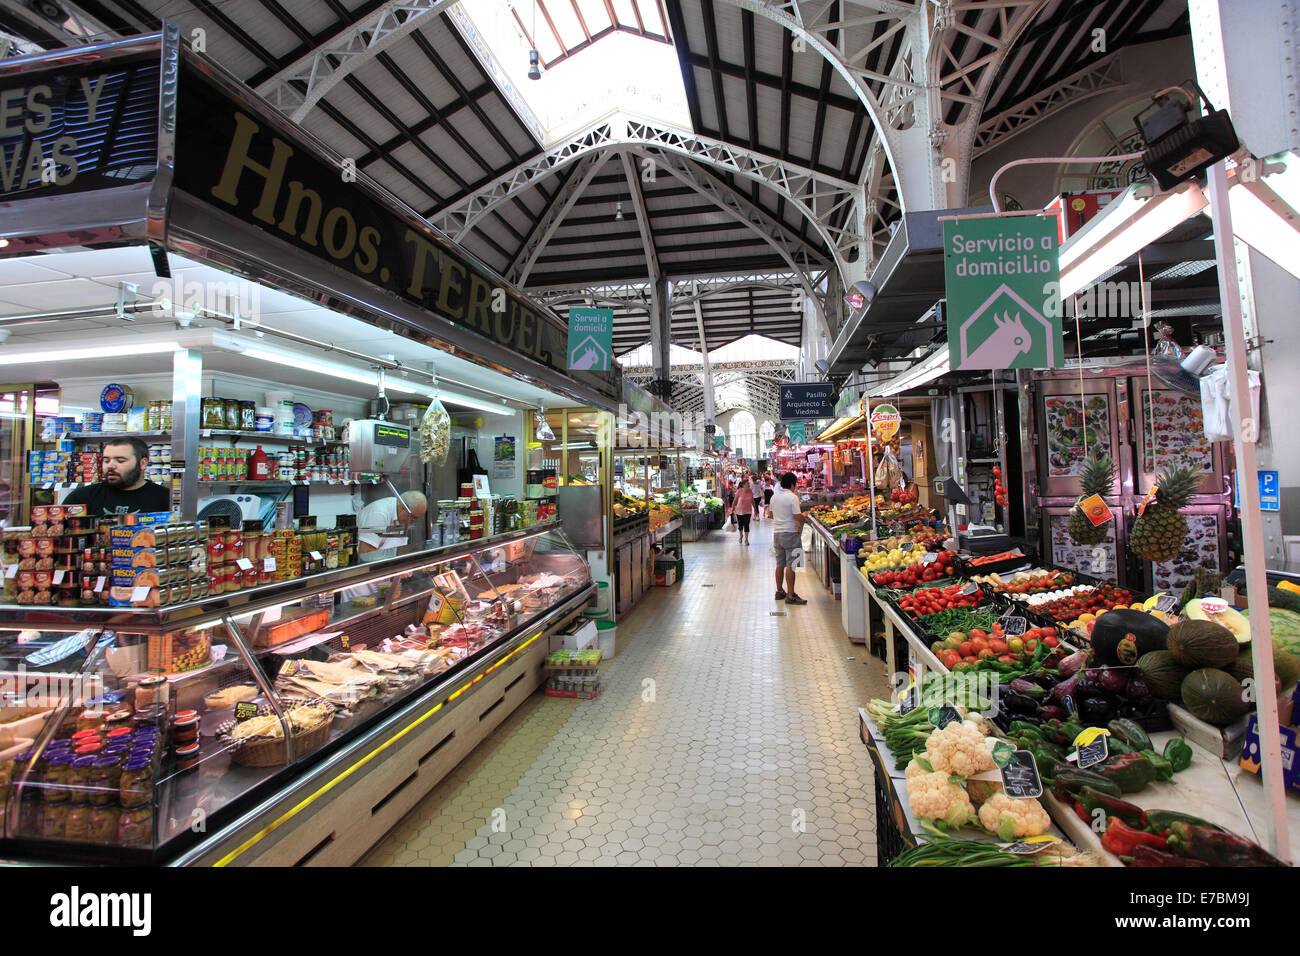 Indoor market stalls, sale of fruits and vegetables, Mercado Central, Central market, Valencia City, Spain, Europe. - Stock Image